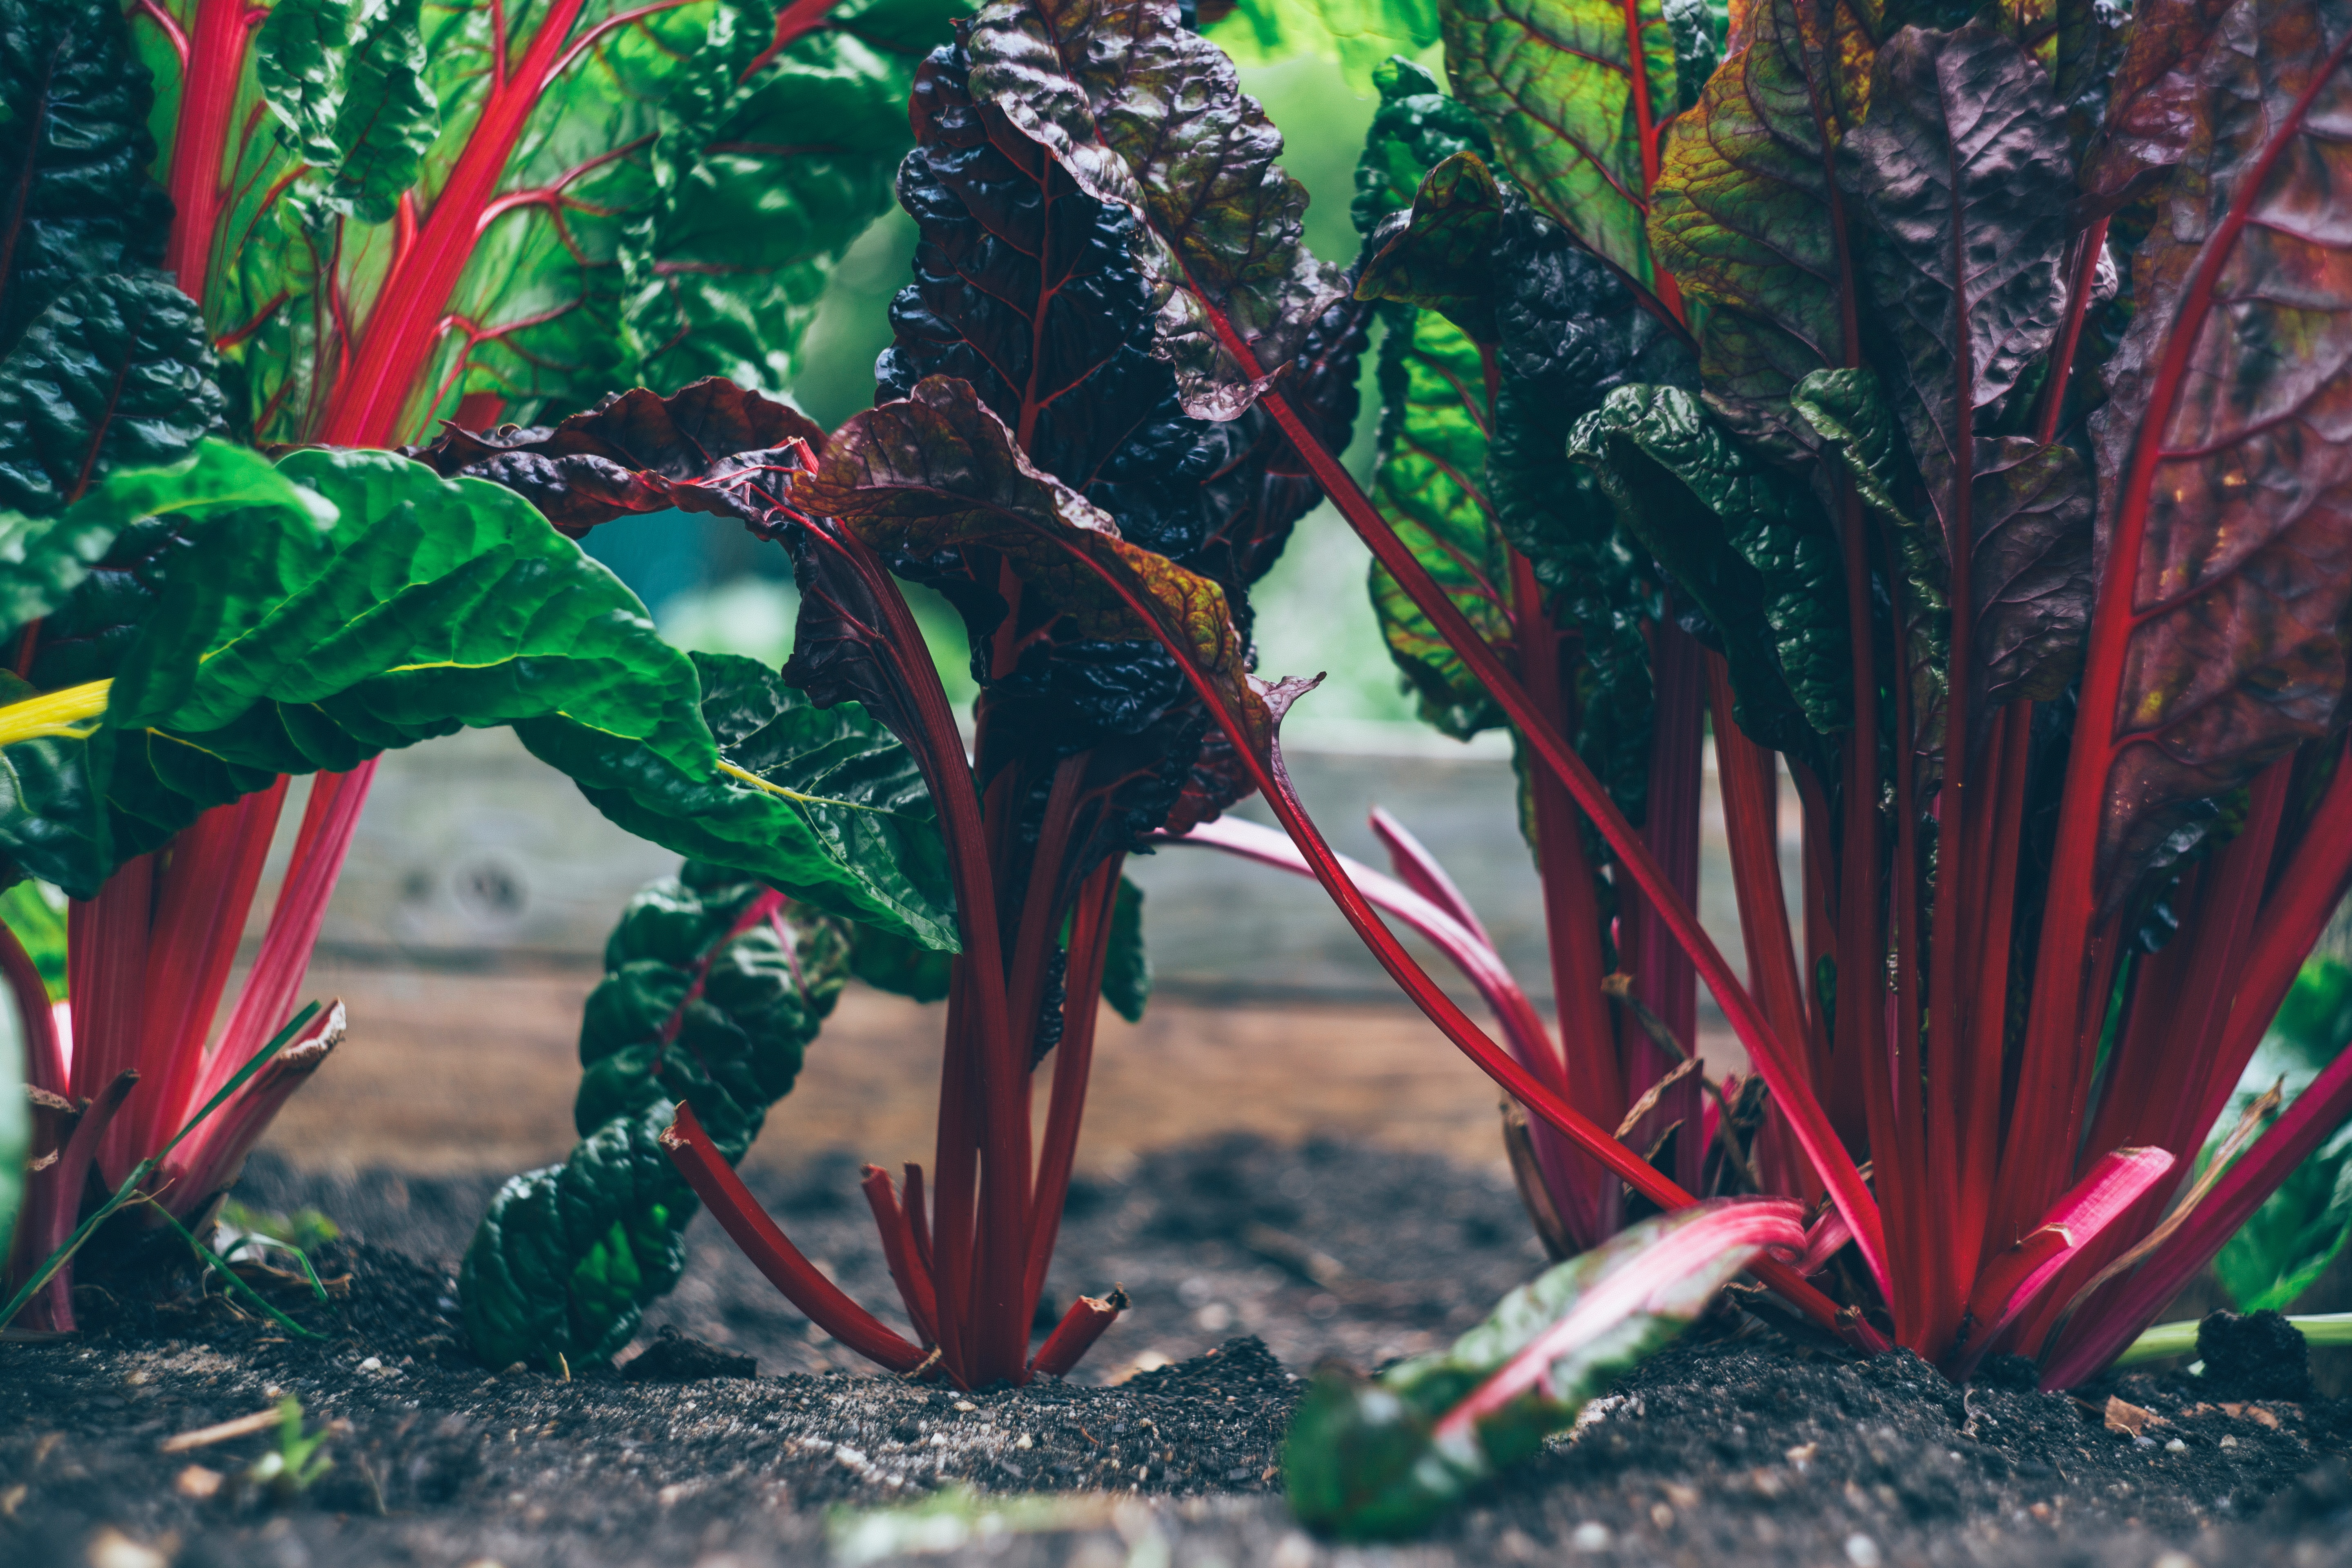 Edible Beet Greens growing out of the soil